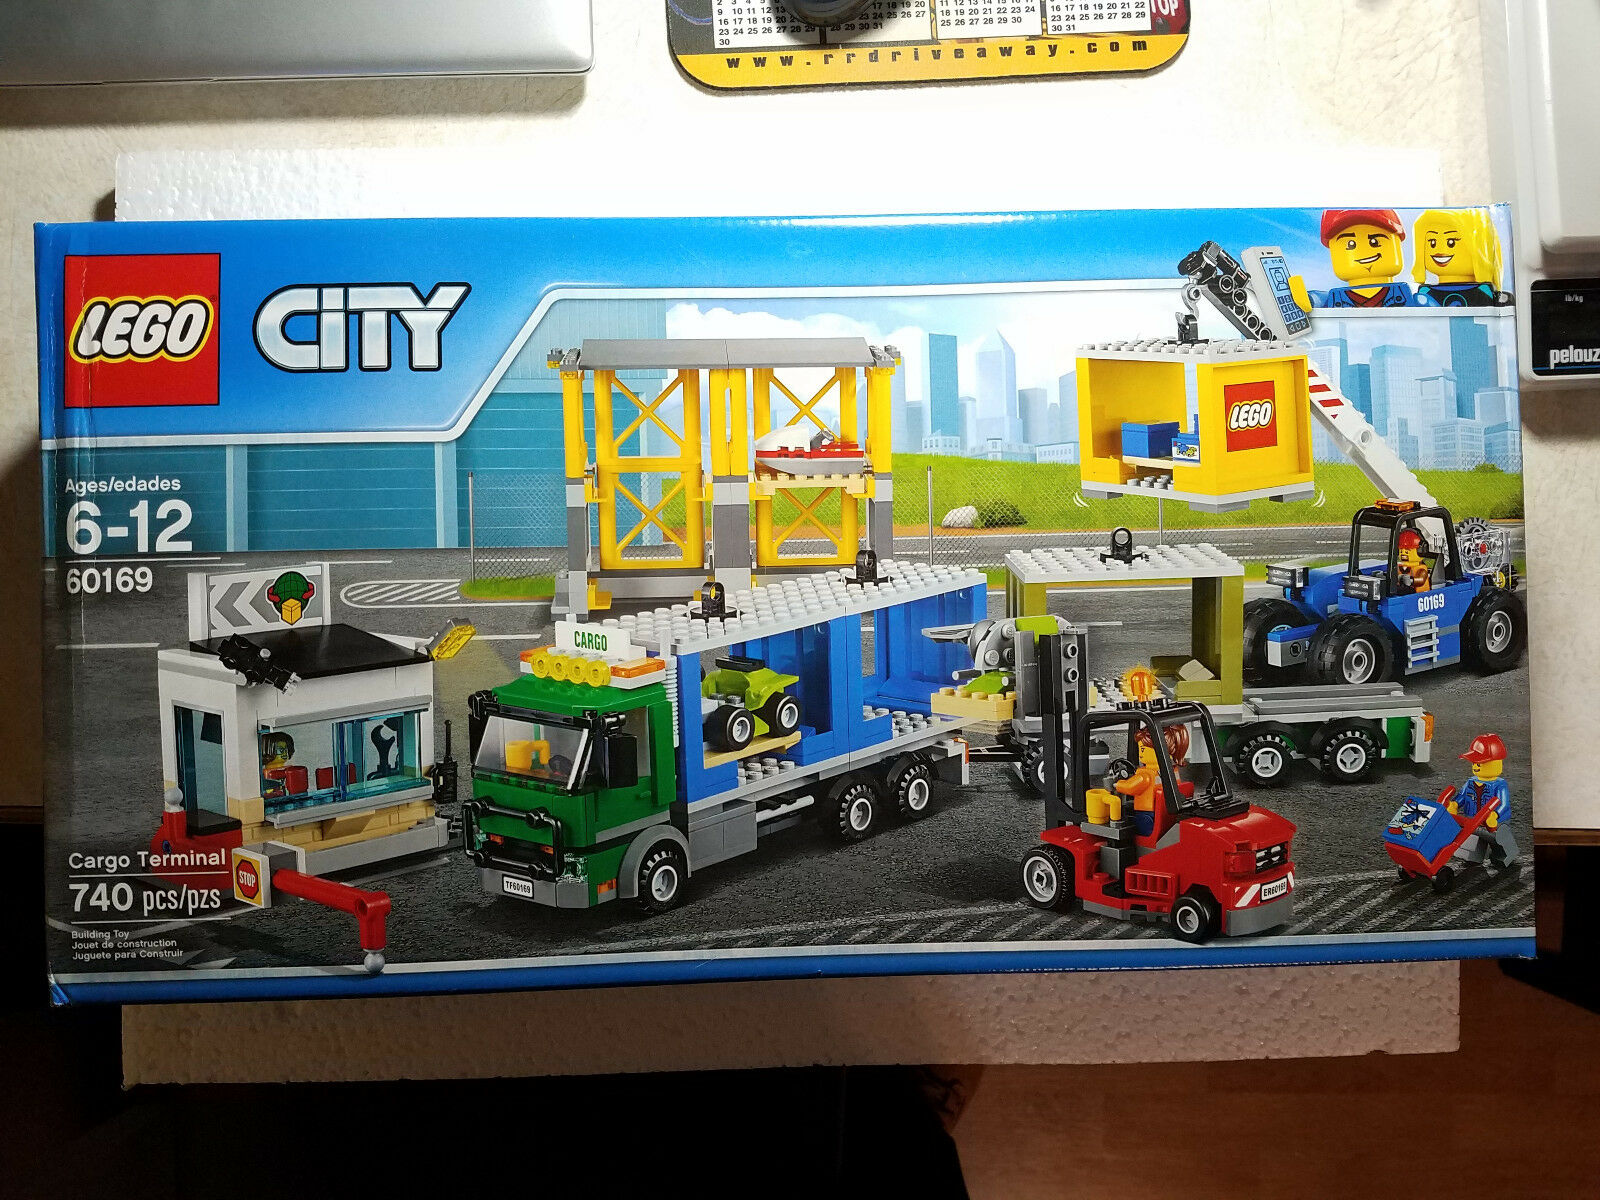 NEW LEGO City Town Cargo Terminal 60169 740 Pcs Building Toy Port